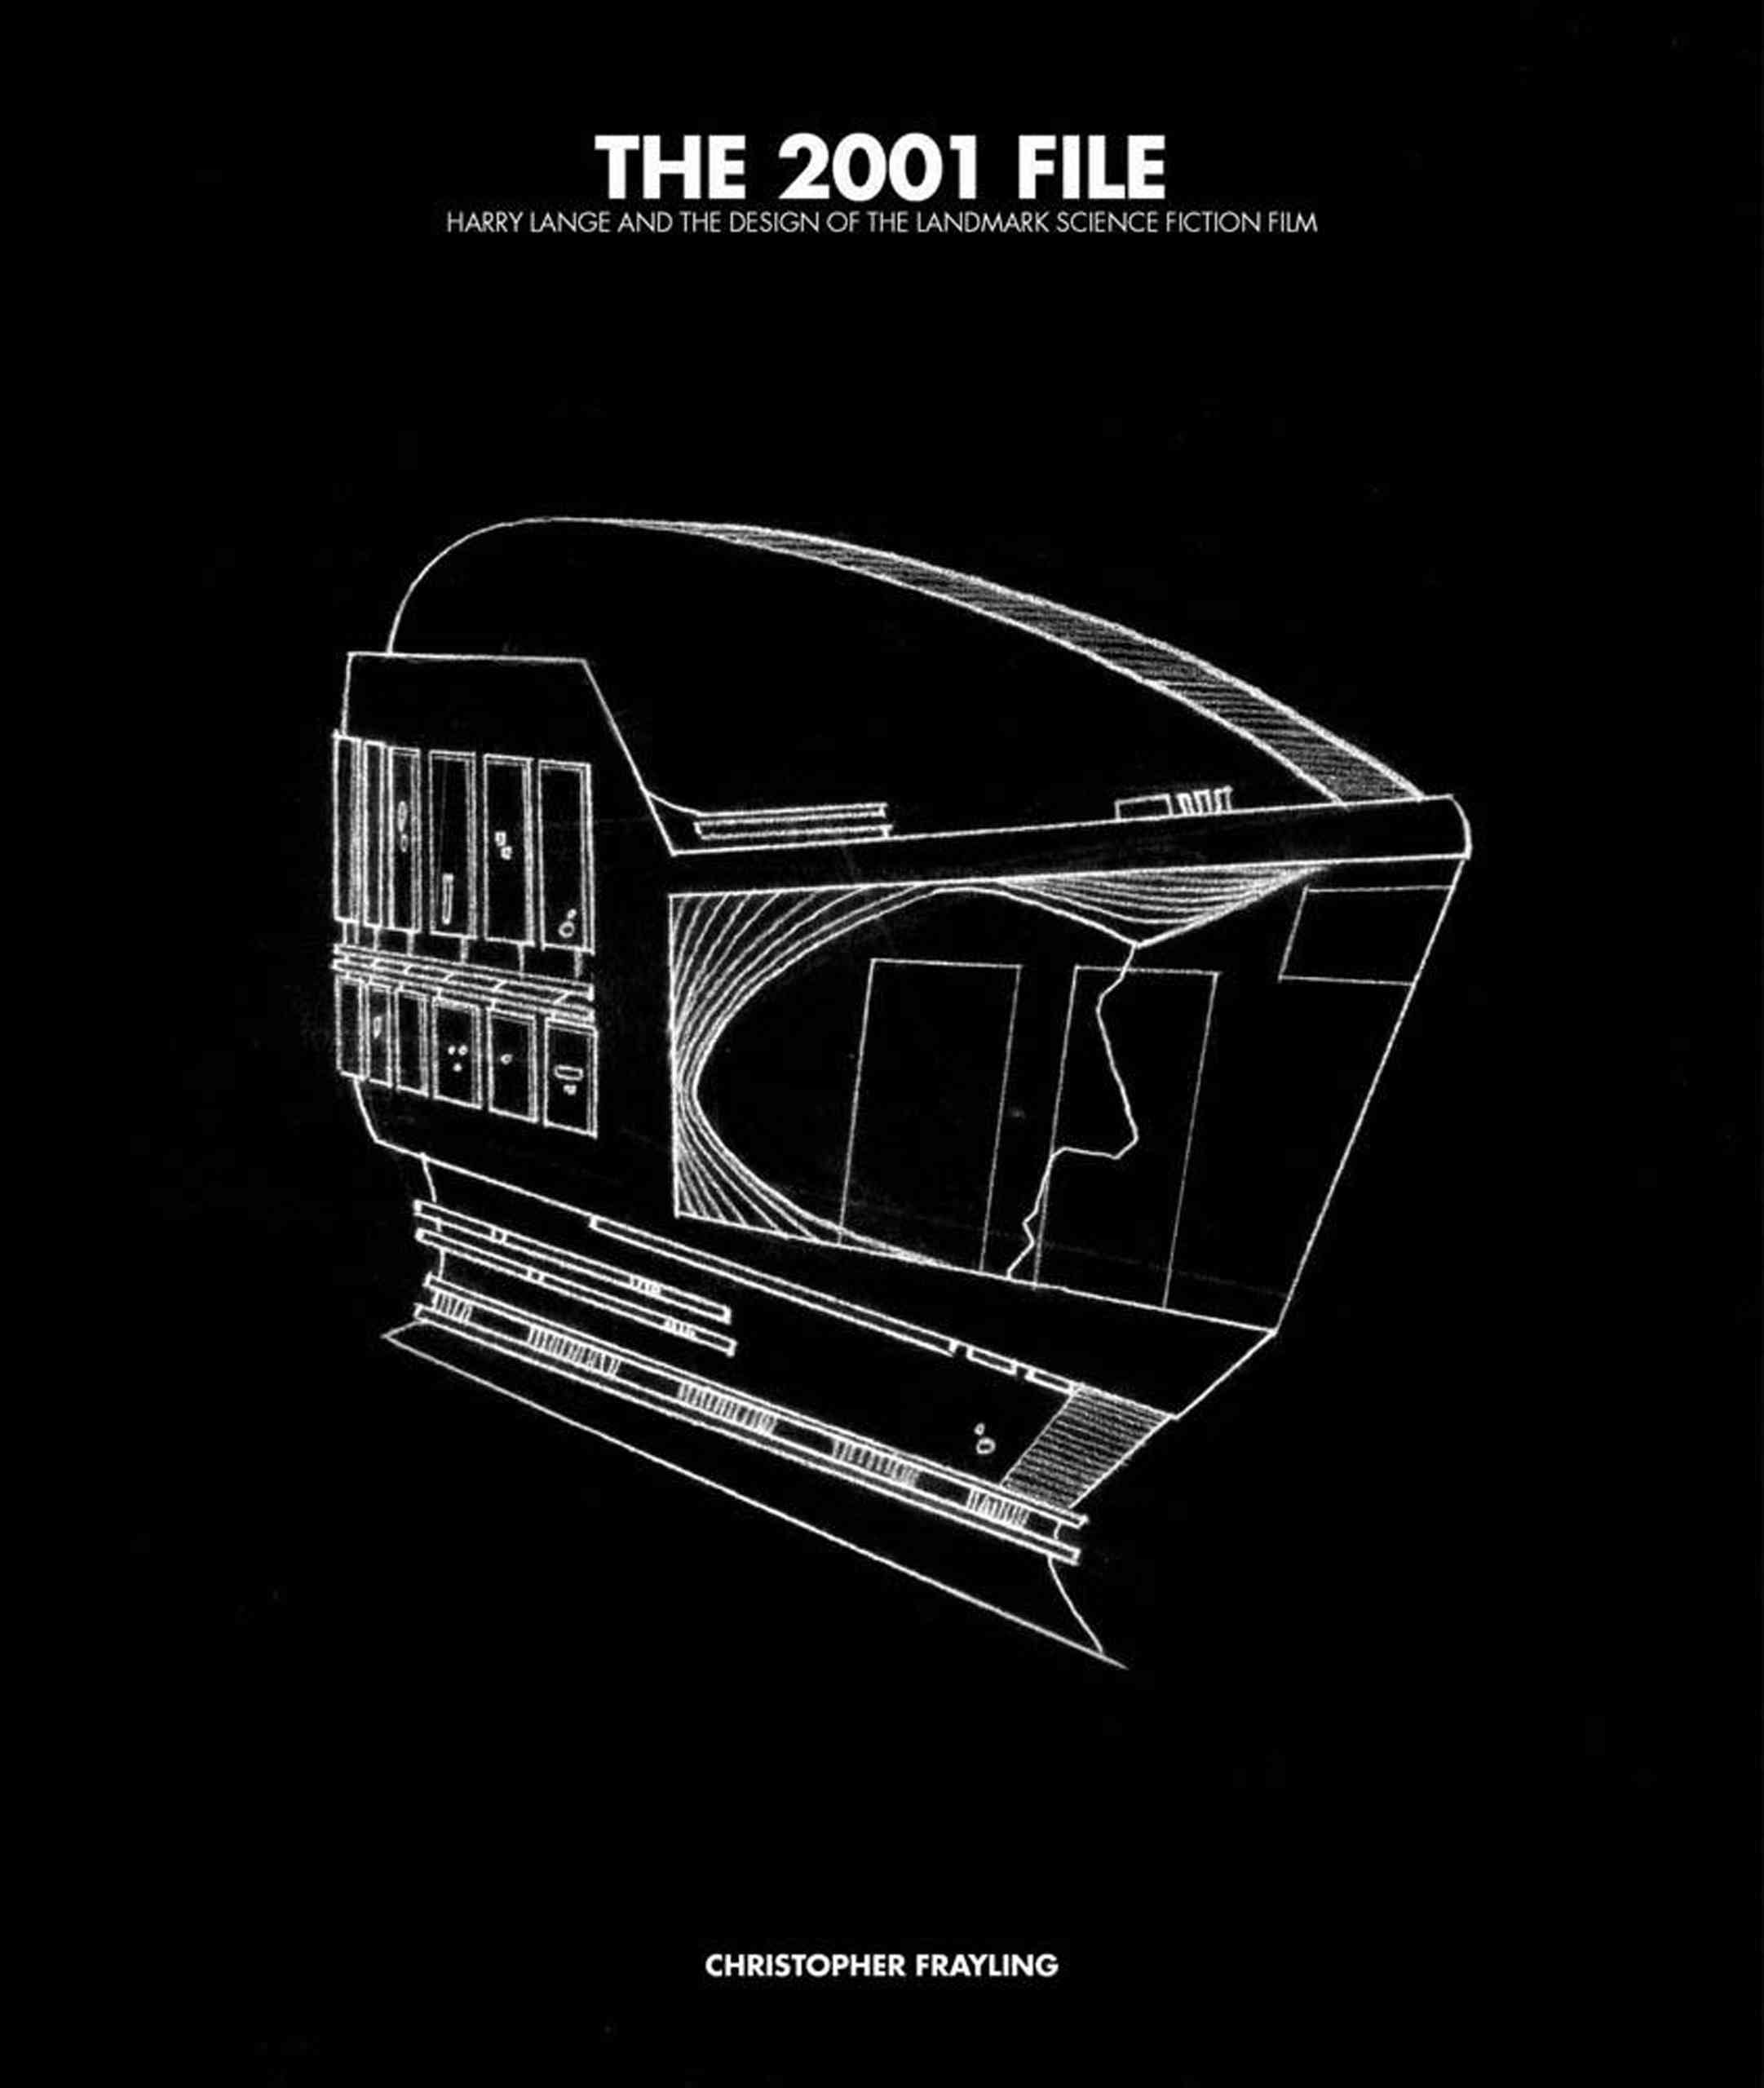 The 2001 File: Harry Lange and the Design of the Landmark Science Fiction Film (Hardcover)